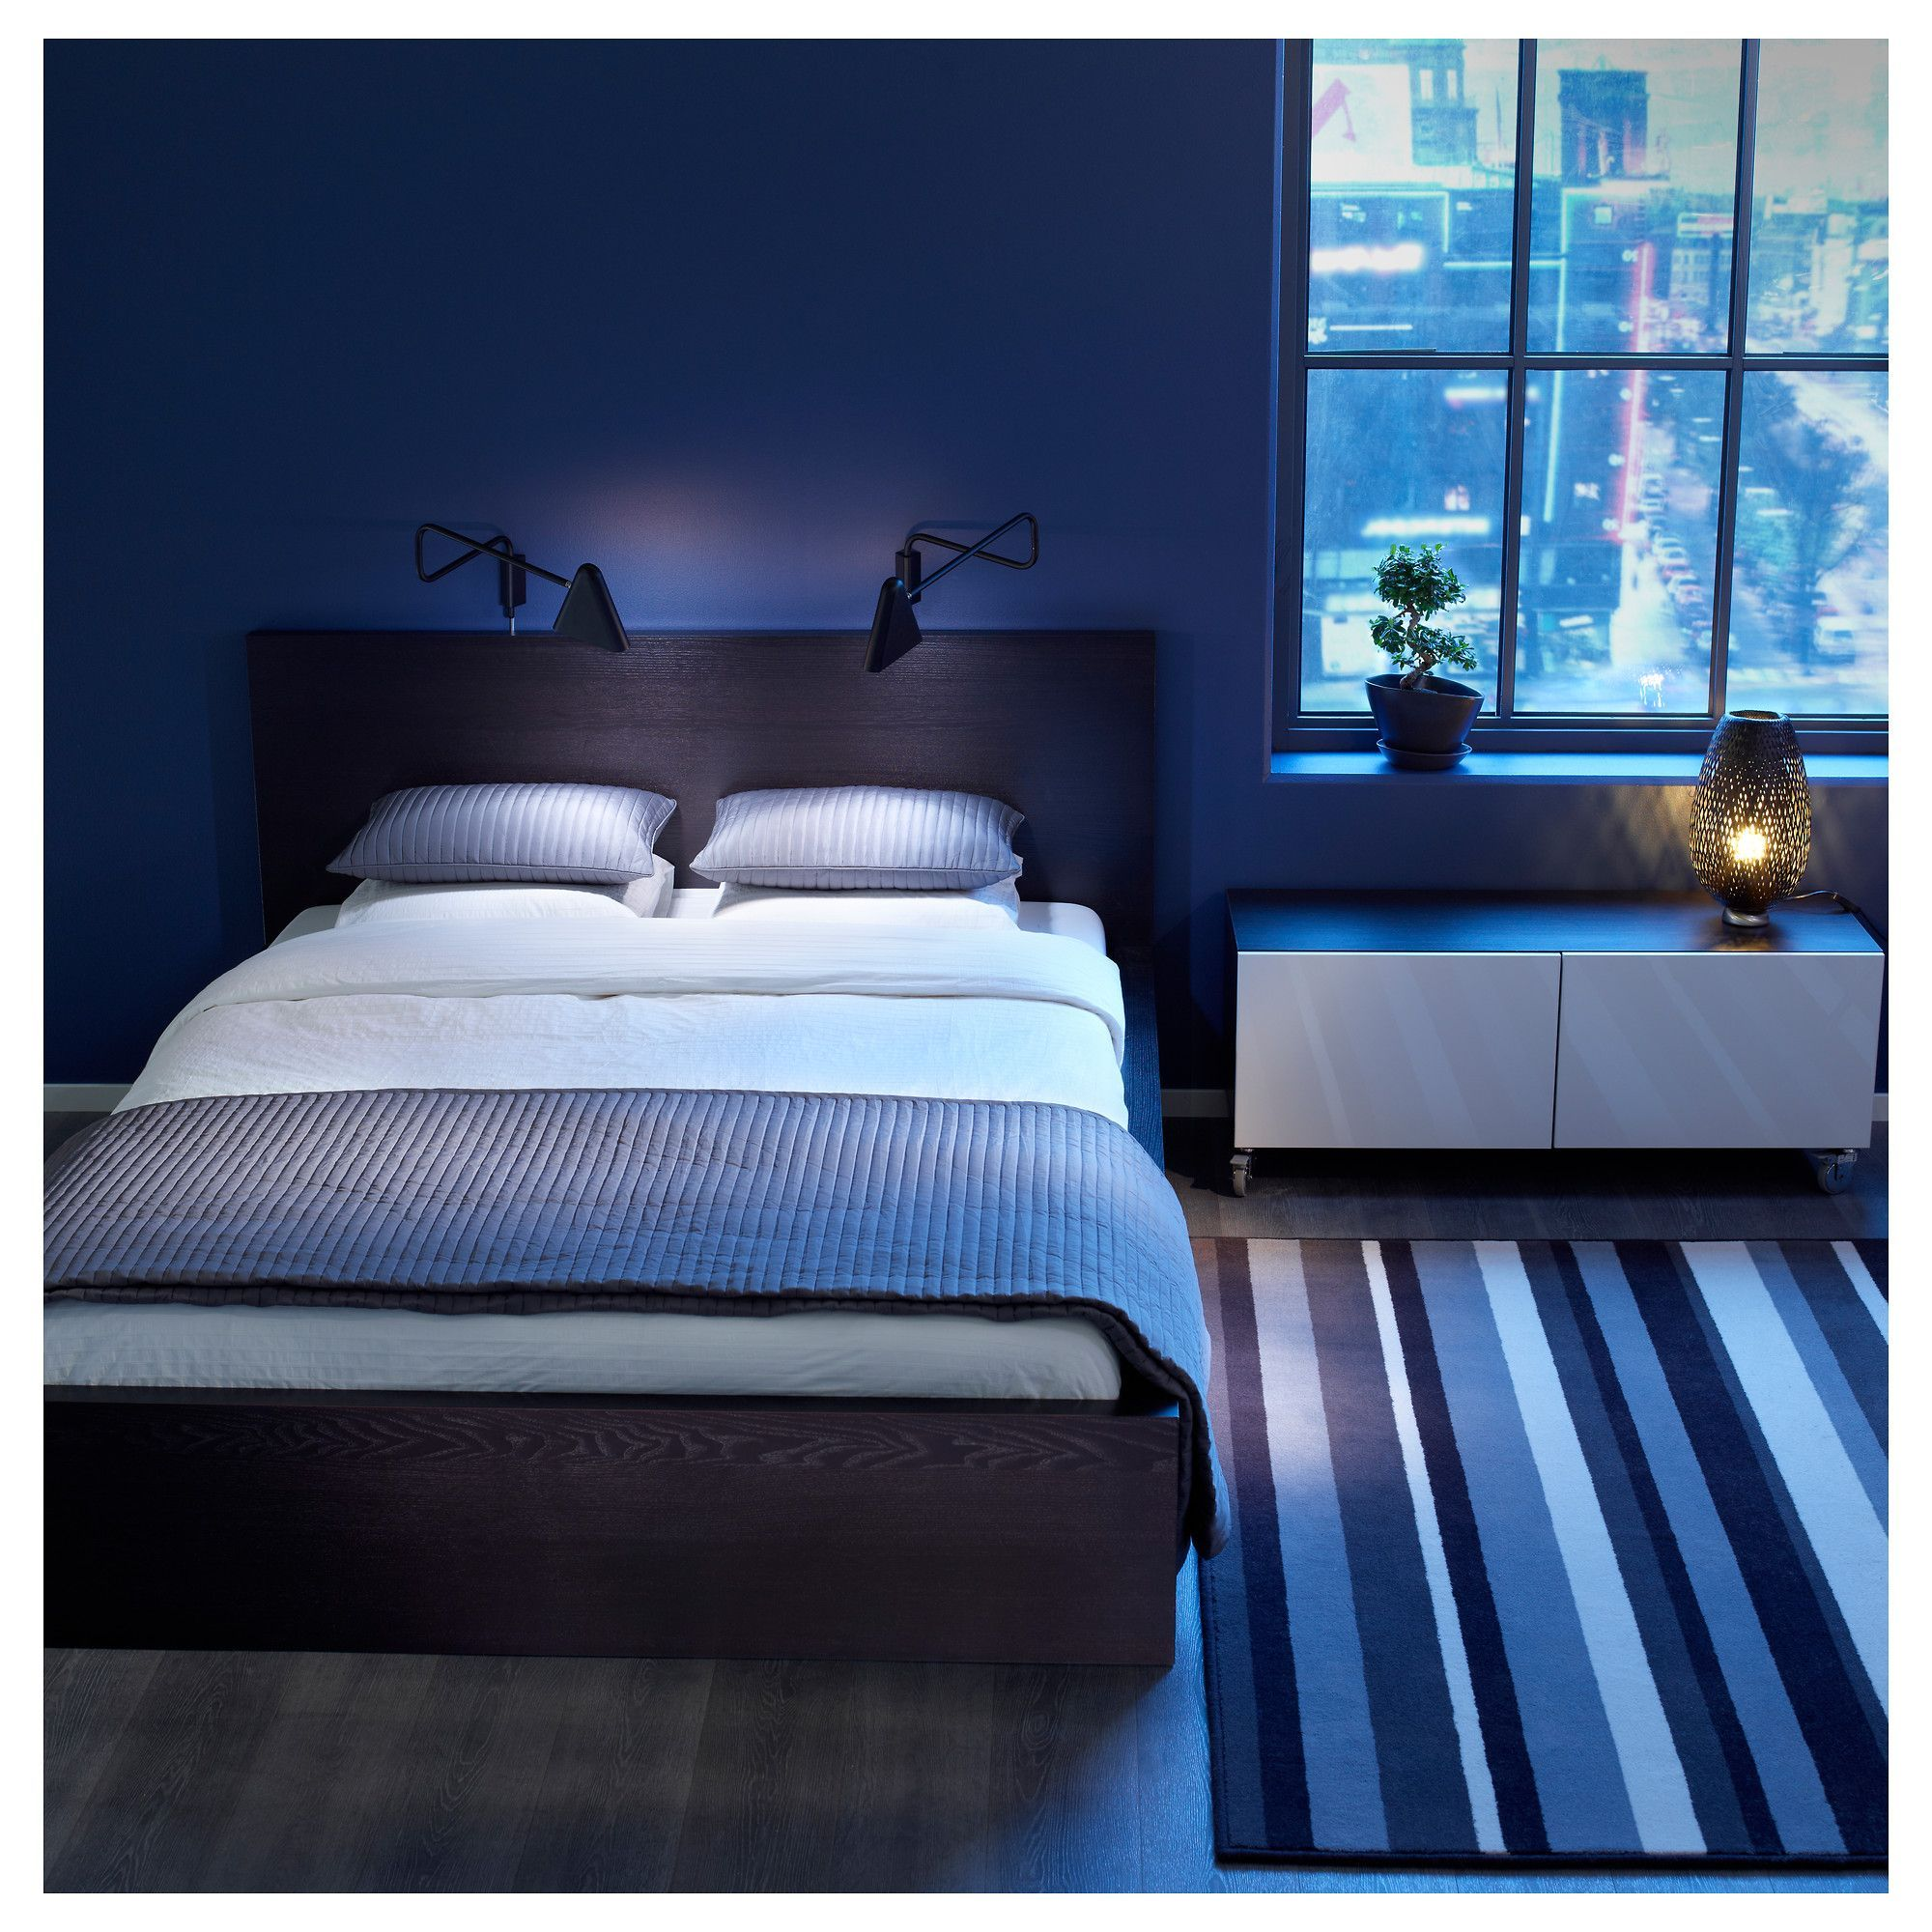 Blue bedroom designs for men - Simple Modern Bedroom For Men With Wooden Bed And Lighting Decorating Plus